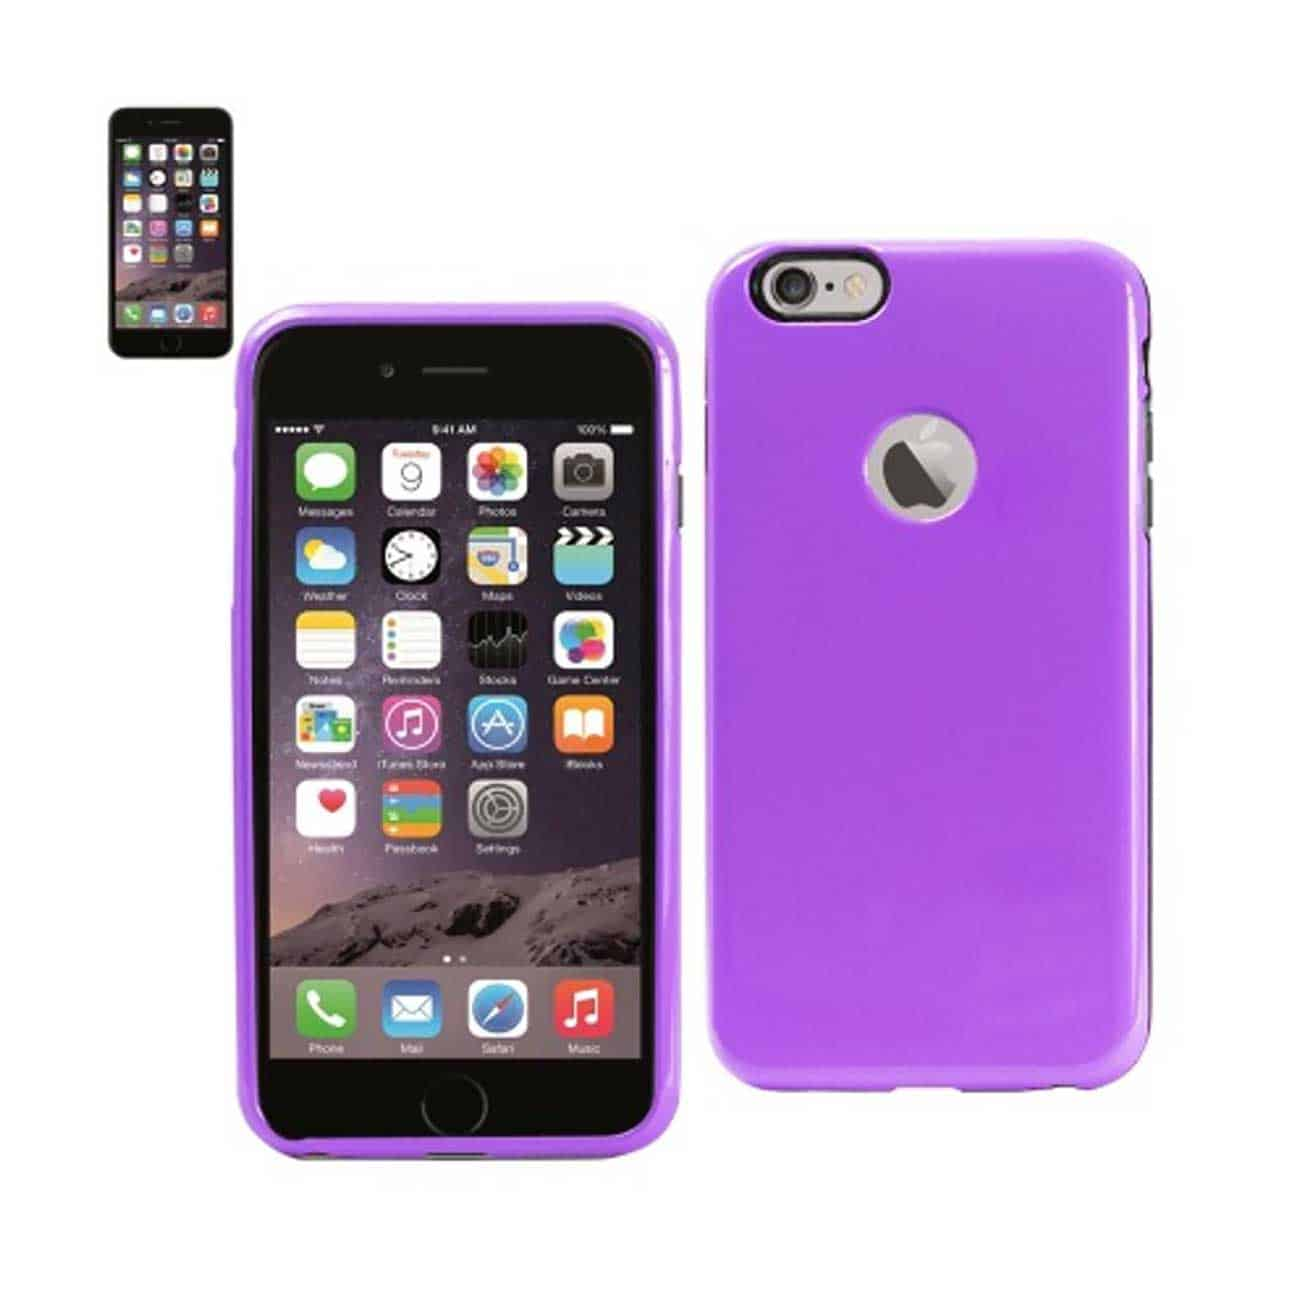 IPHONE 6 PLUS SLIM ARMOR CANDY SHIELD CASE IN PURPLE